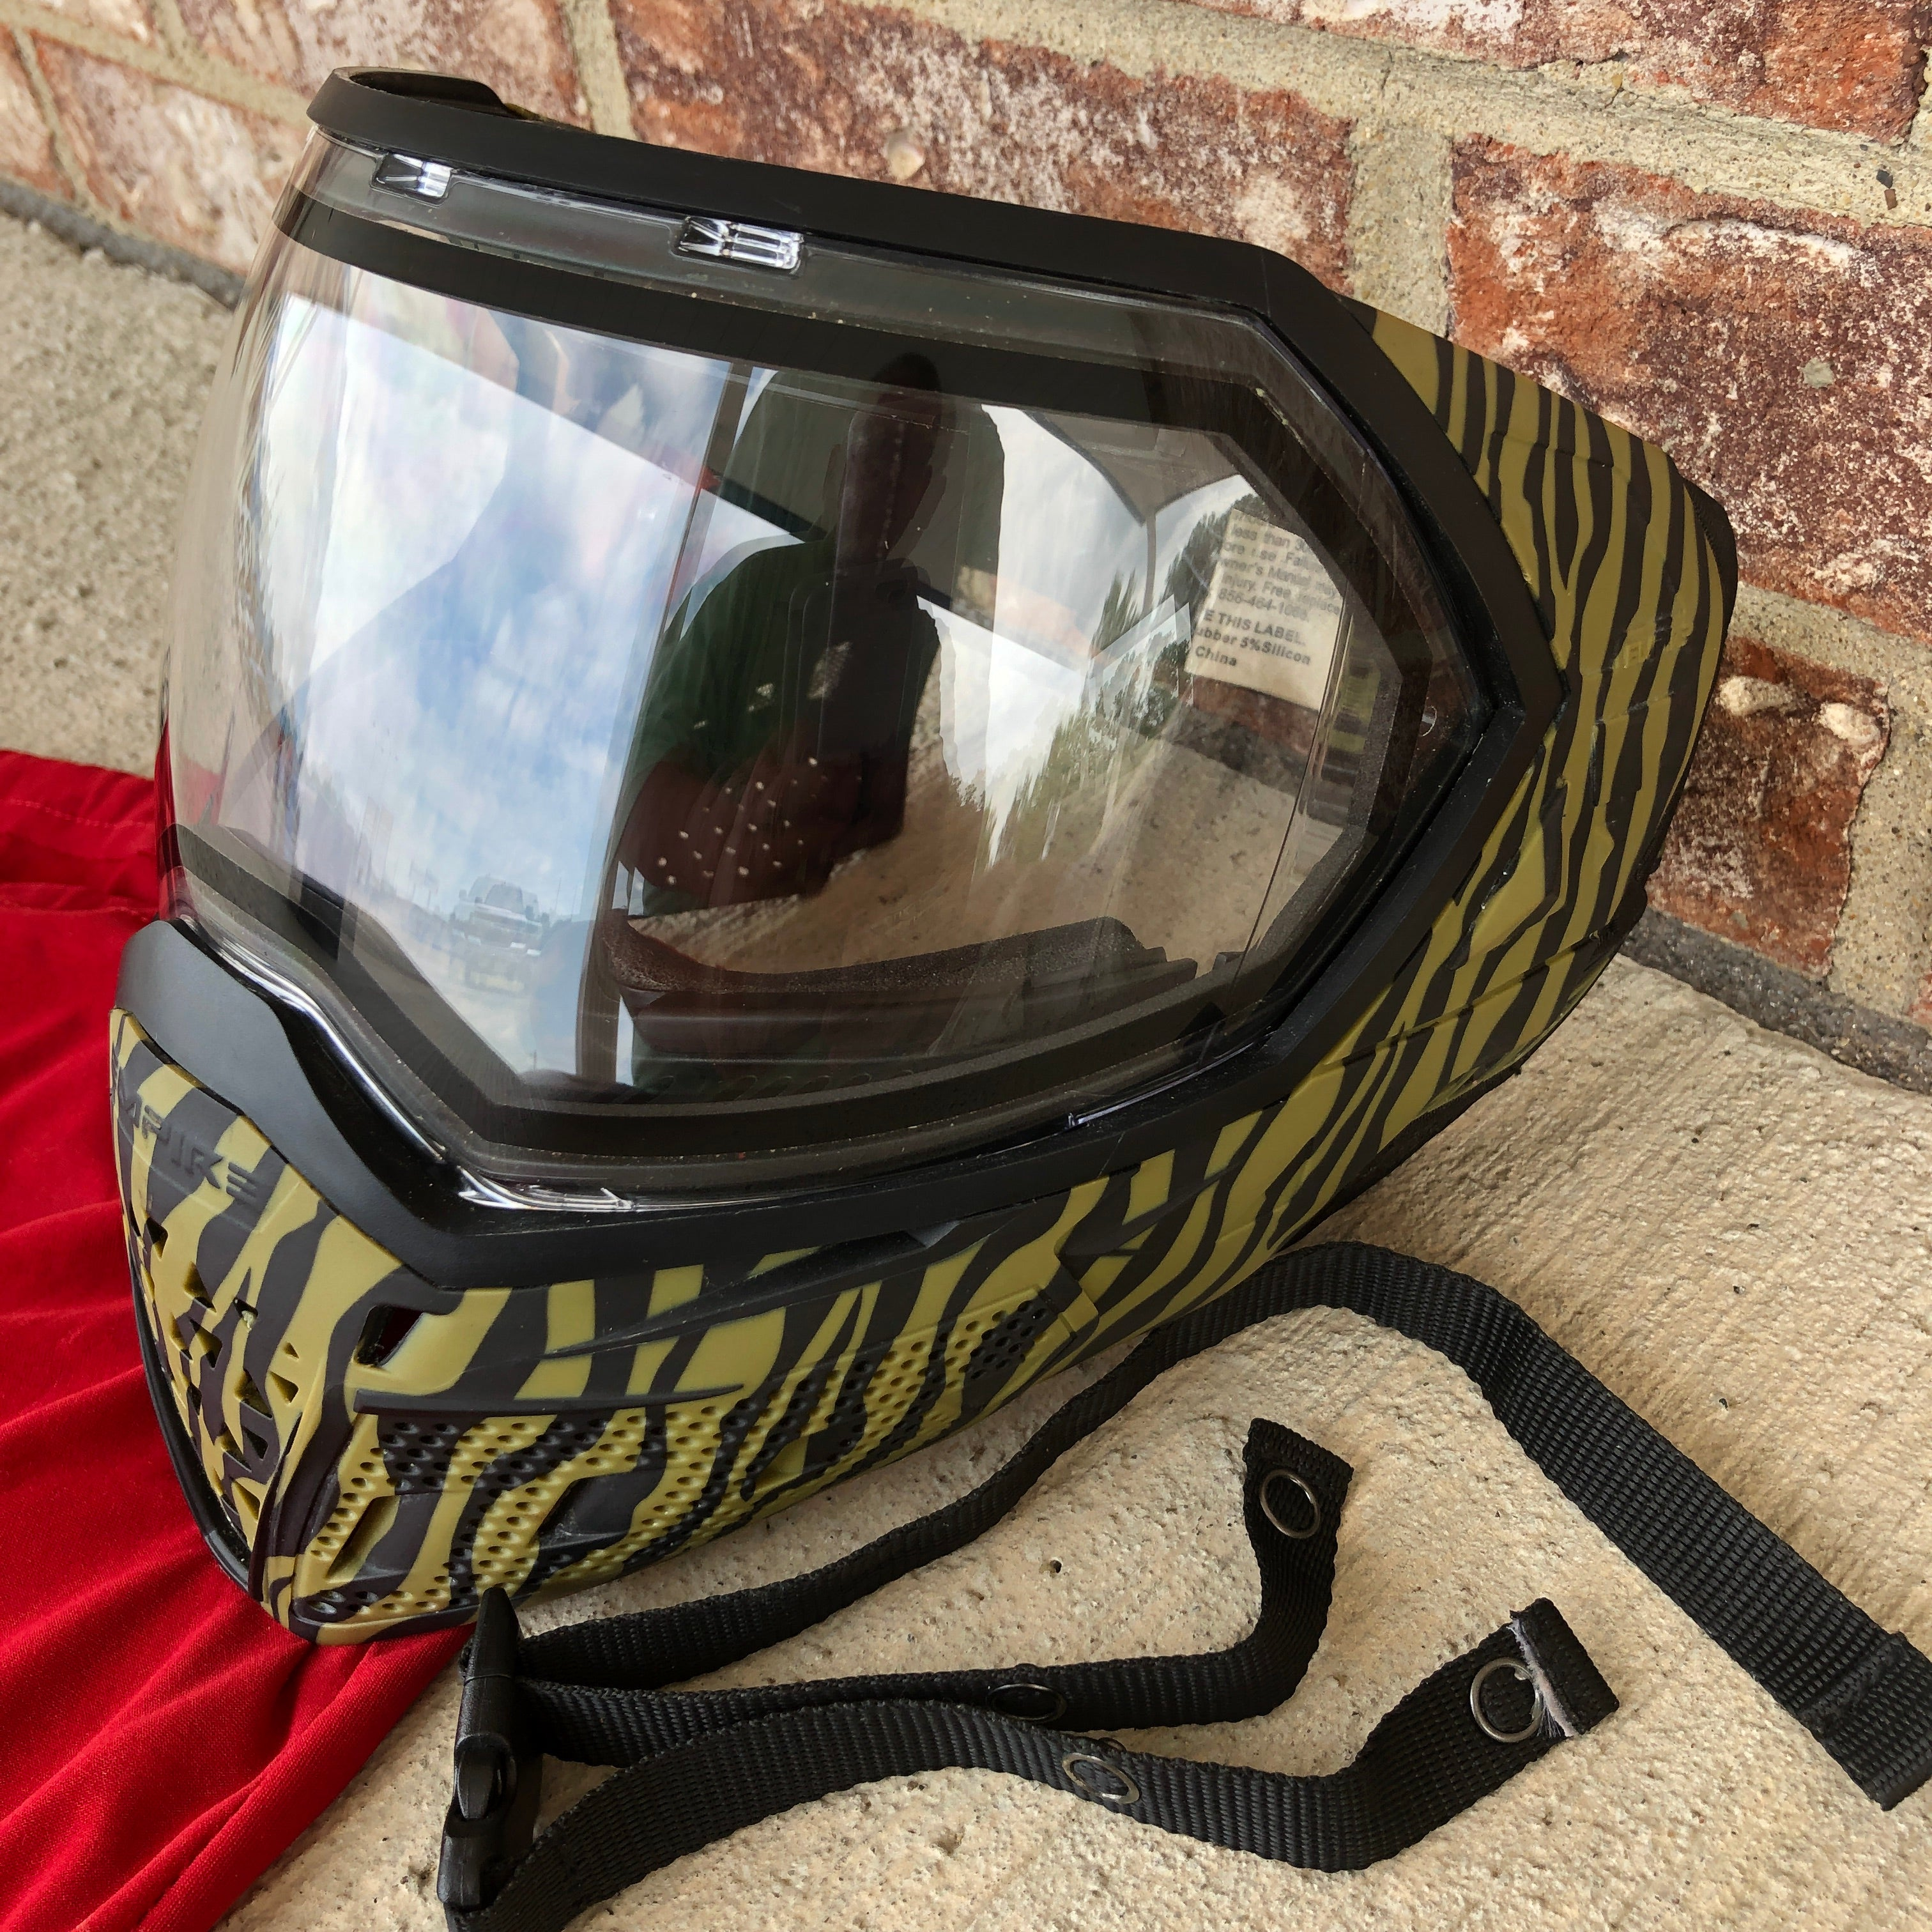 Used Empire EVS Paintball Mask - Tigerstripe